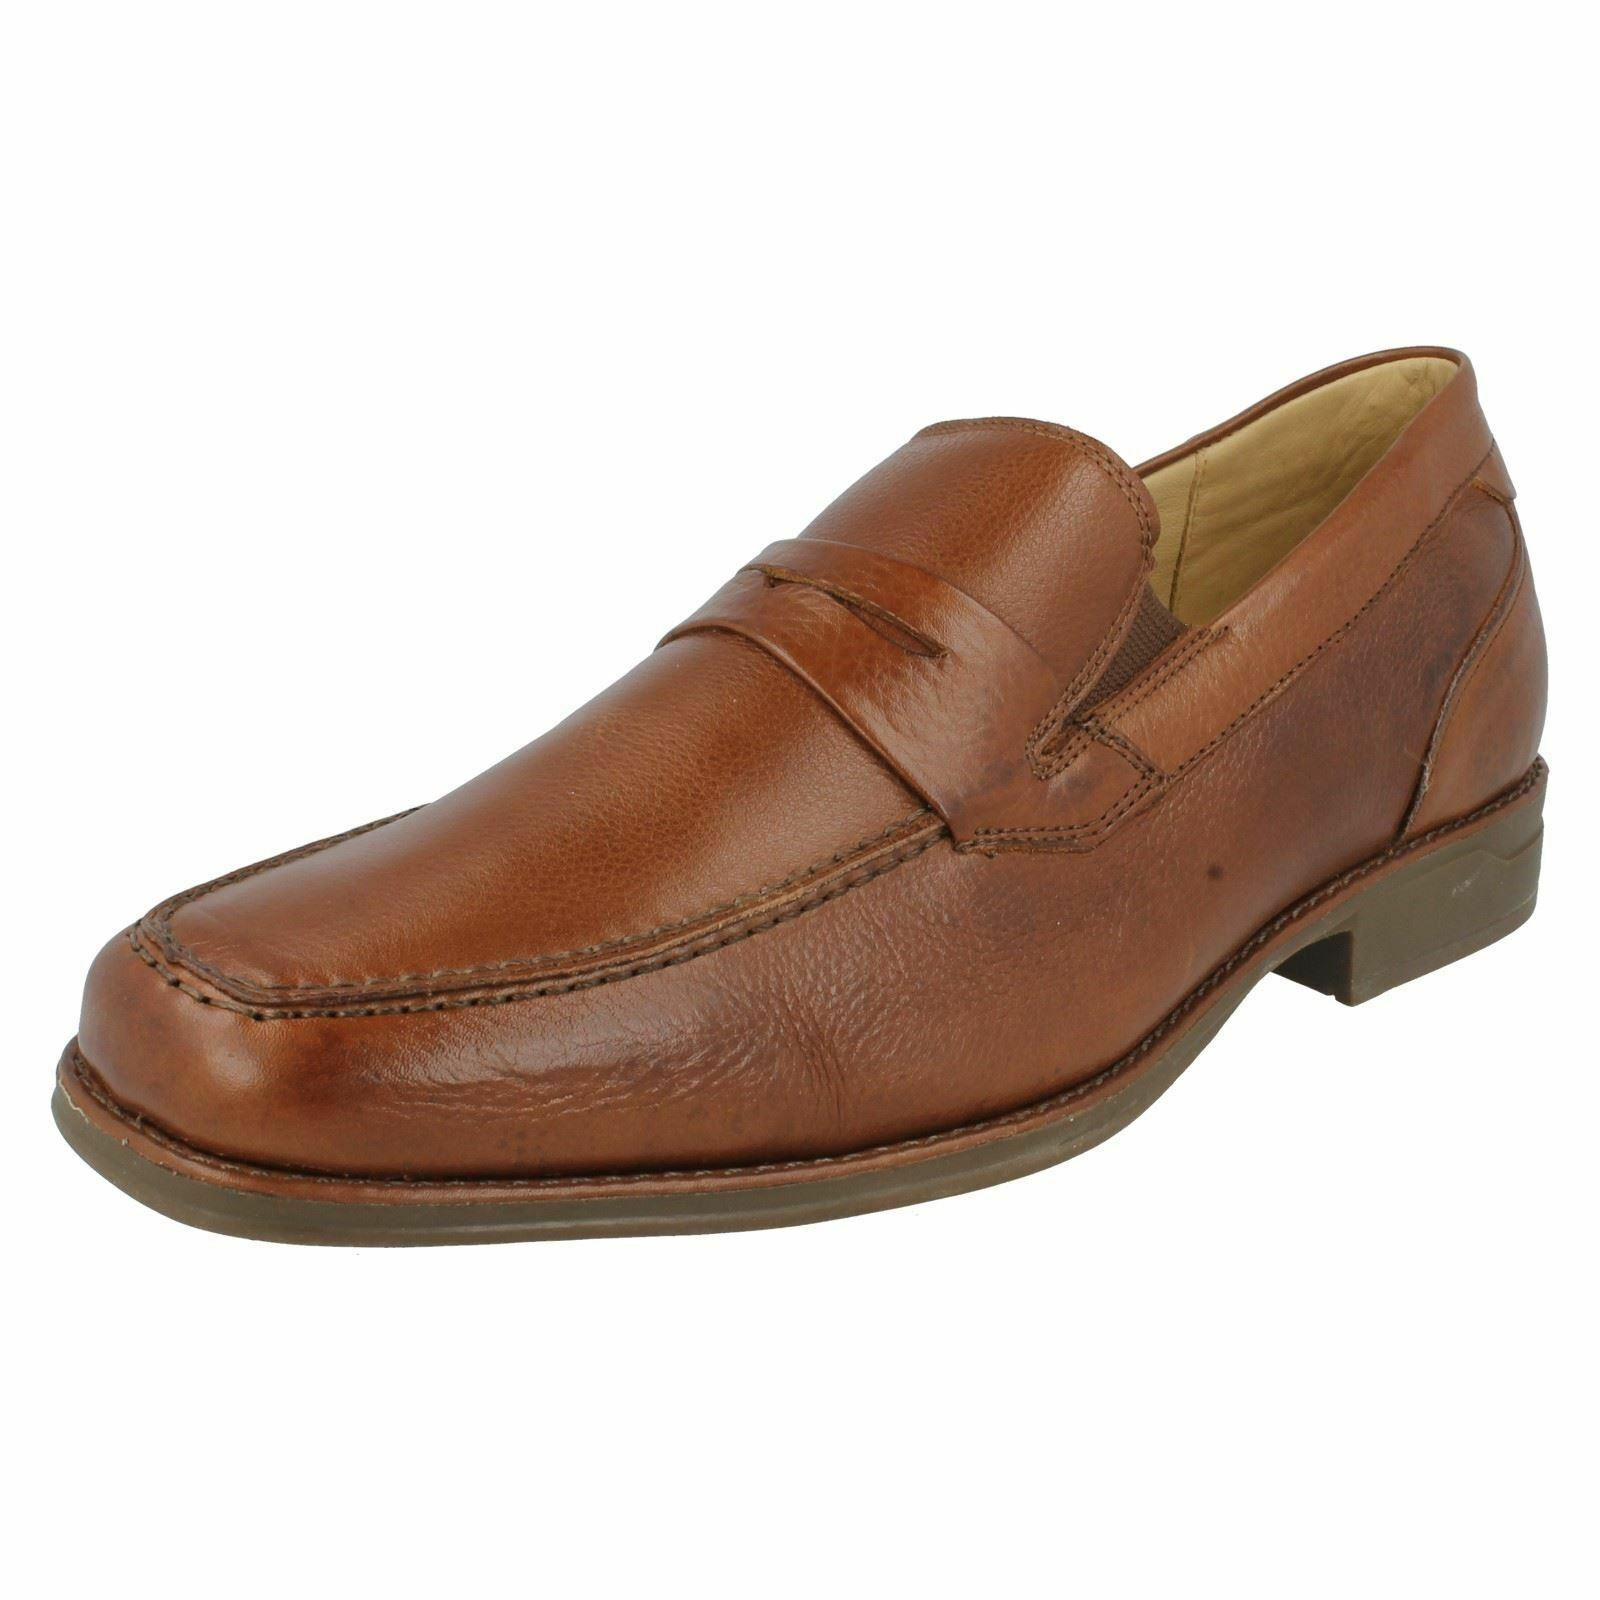 Anatomic & BARBOSA 777710 Da Uomo Co Tan Toast scarpa slip-on () (GO Kett)